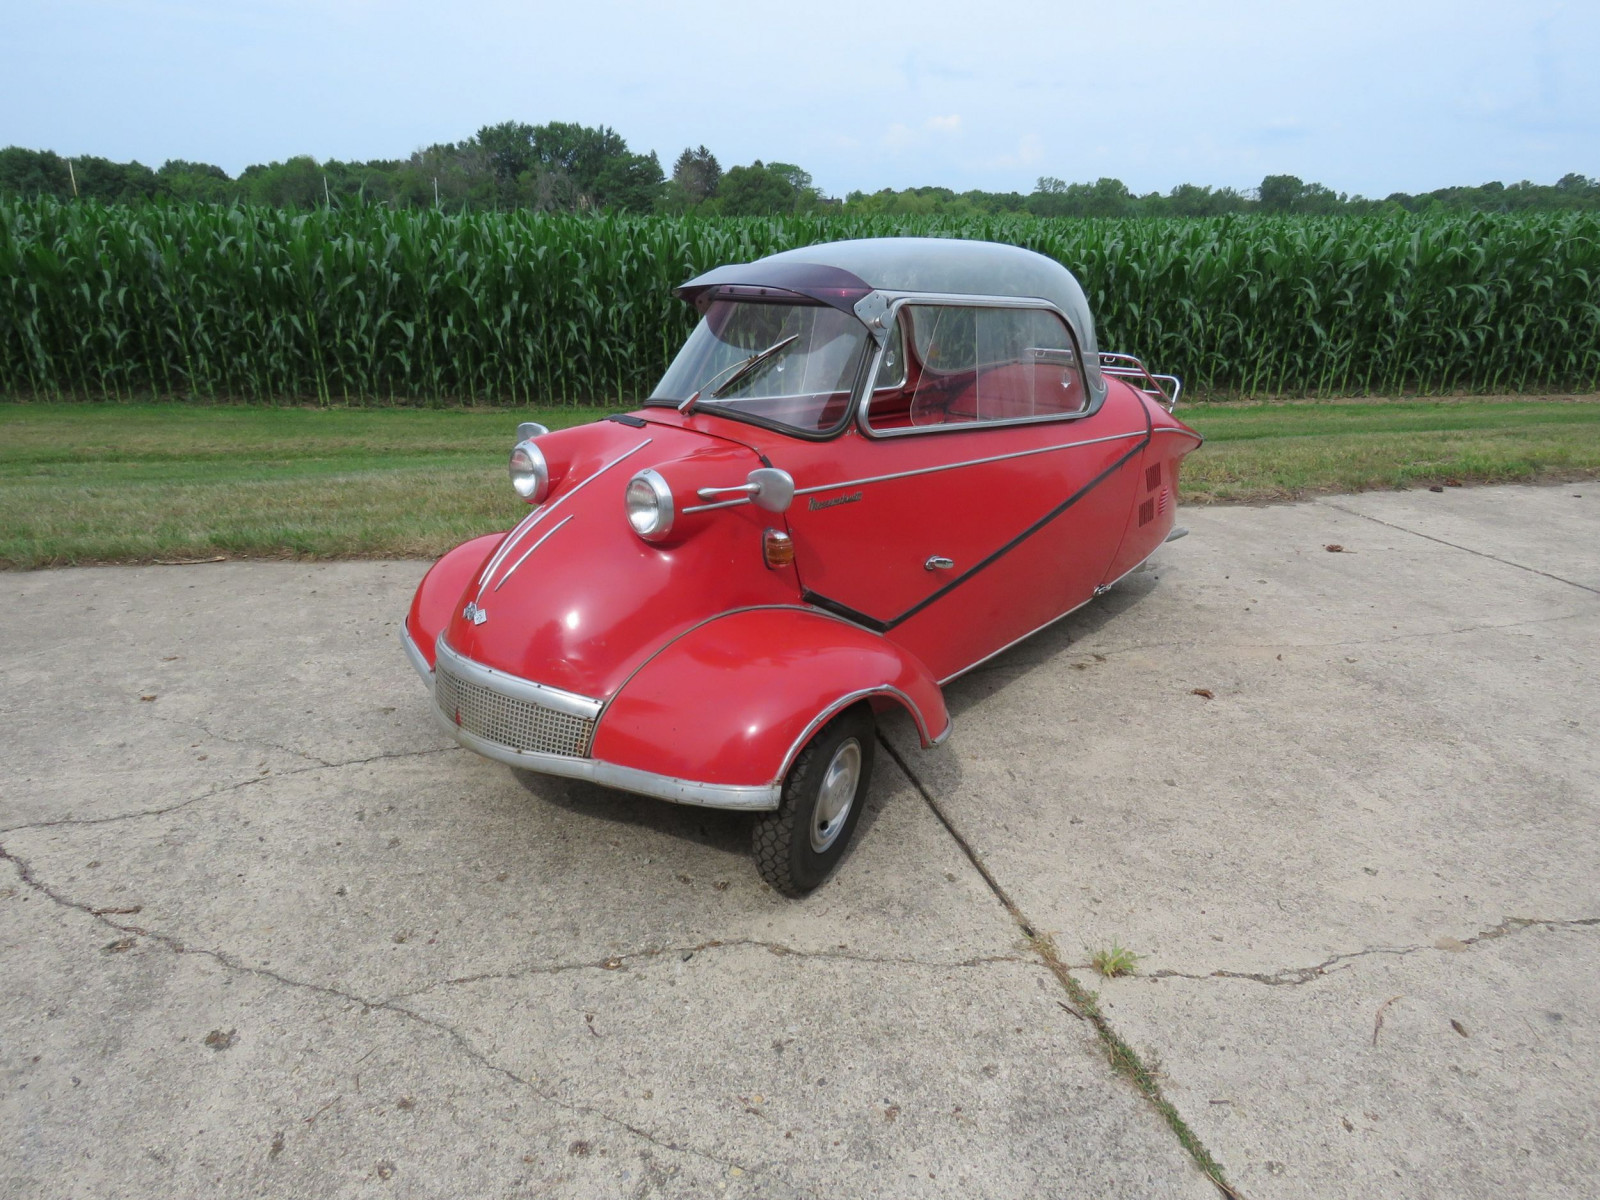 1959 Messerschmitt      KR-200 BubbleTop Coupe - Image 1